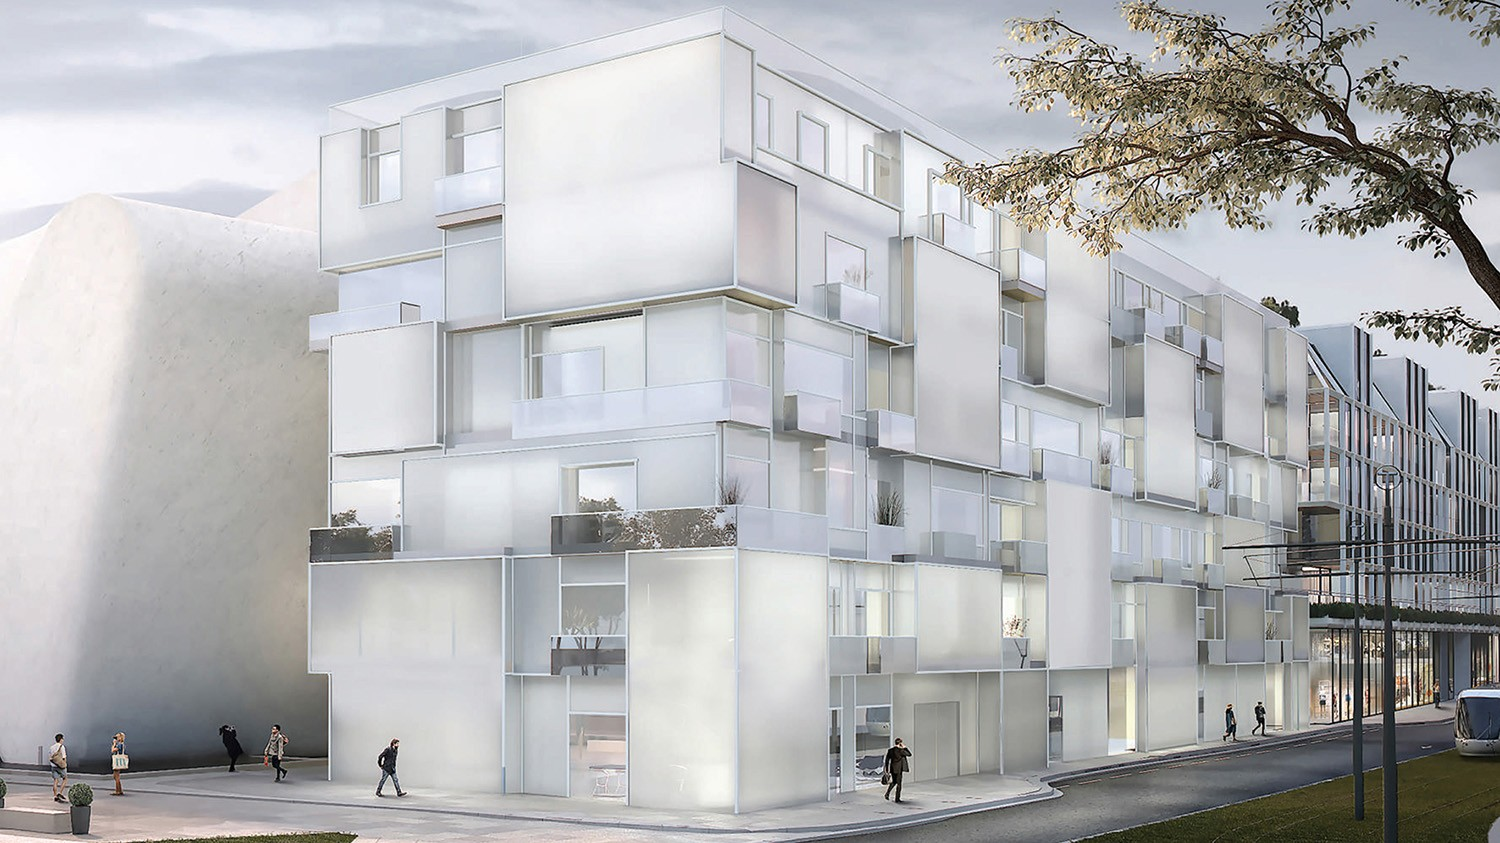 https://s3.us-east-2.amazonaws.com/steven-holl/uploads/projects/project-images/SHA_Angers_HotelDayView_WH.jpg